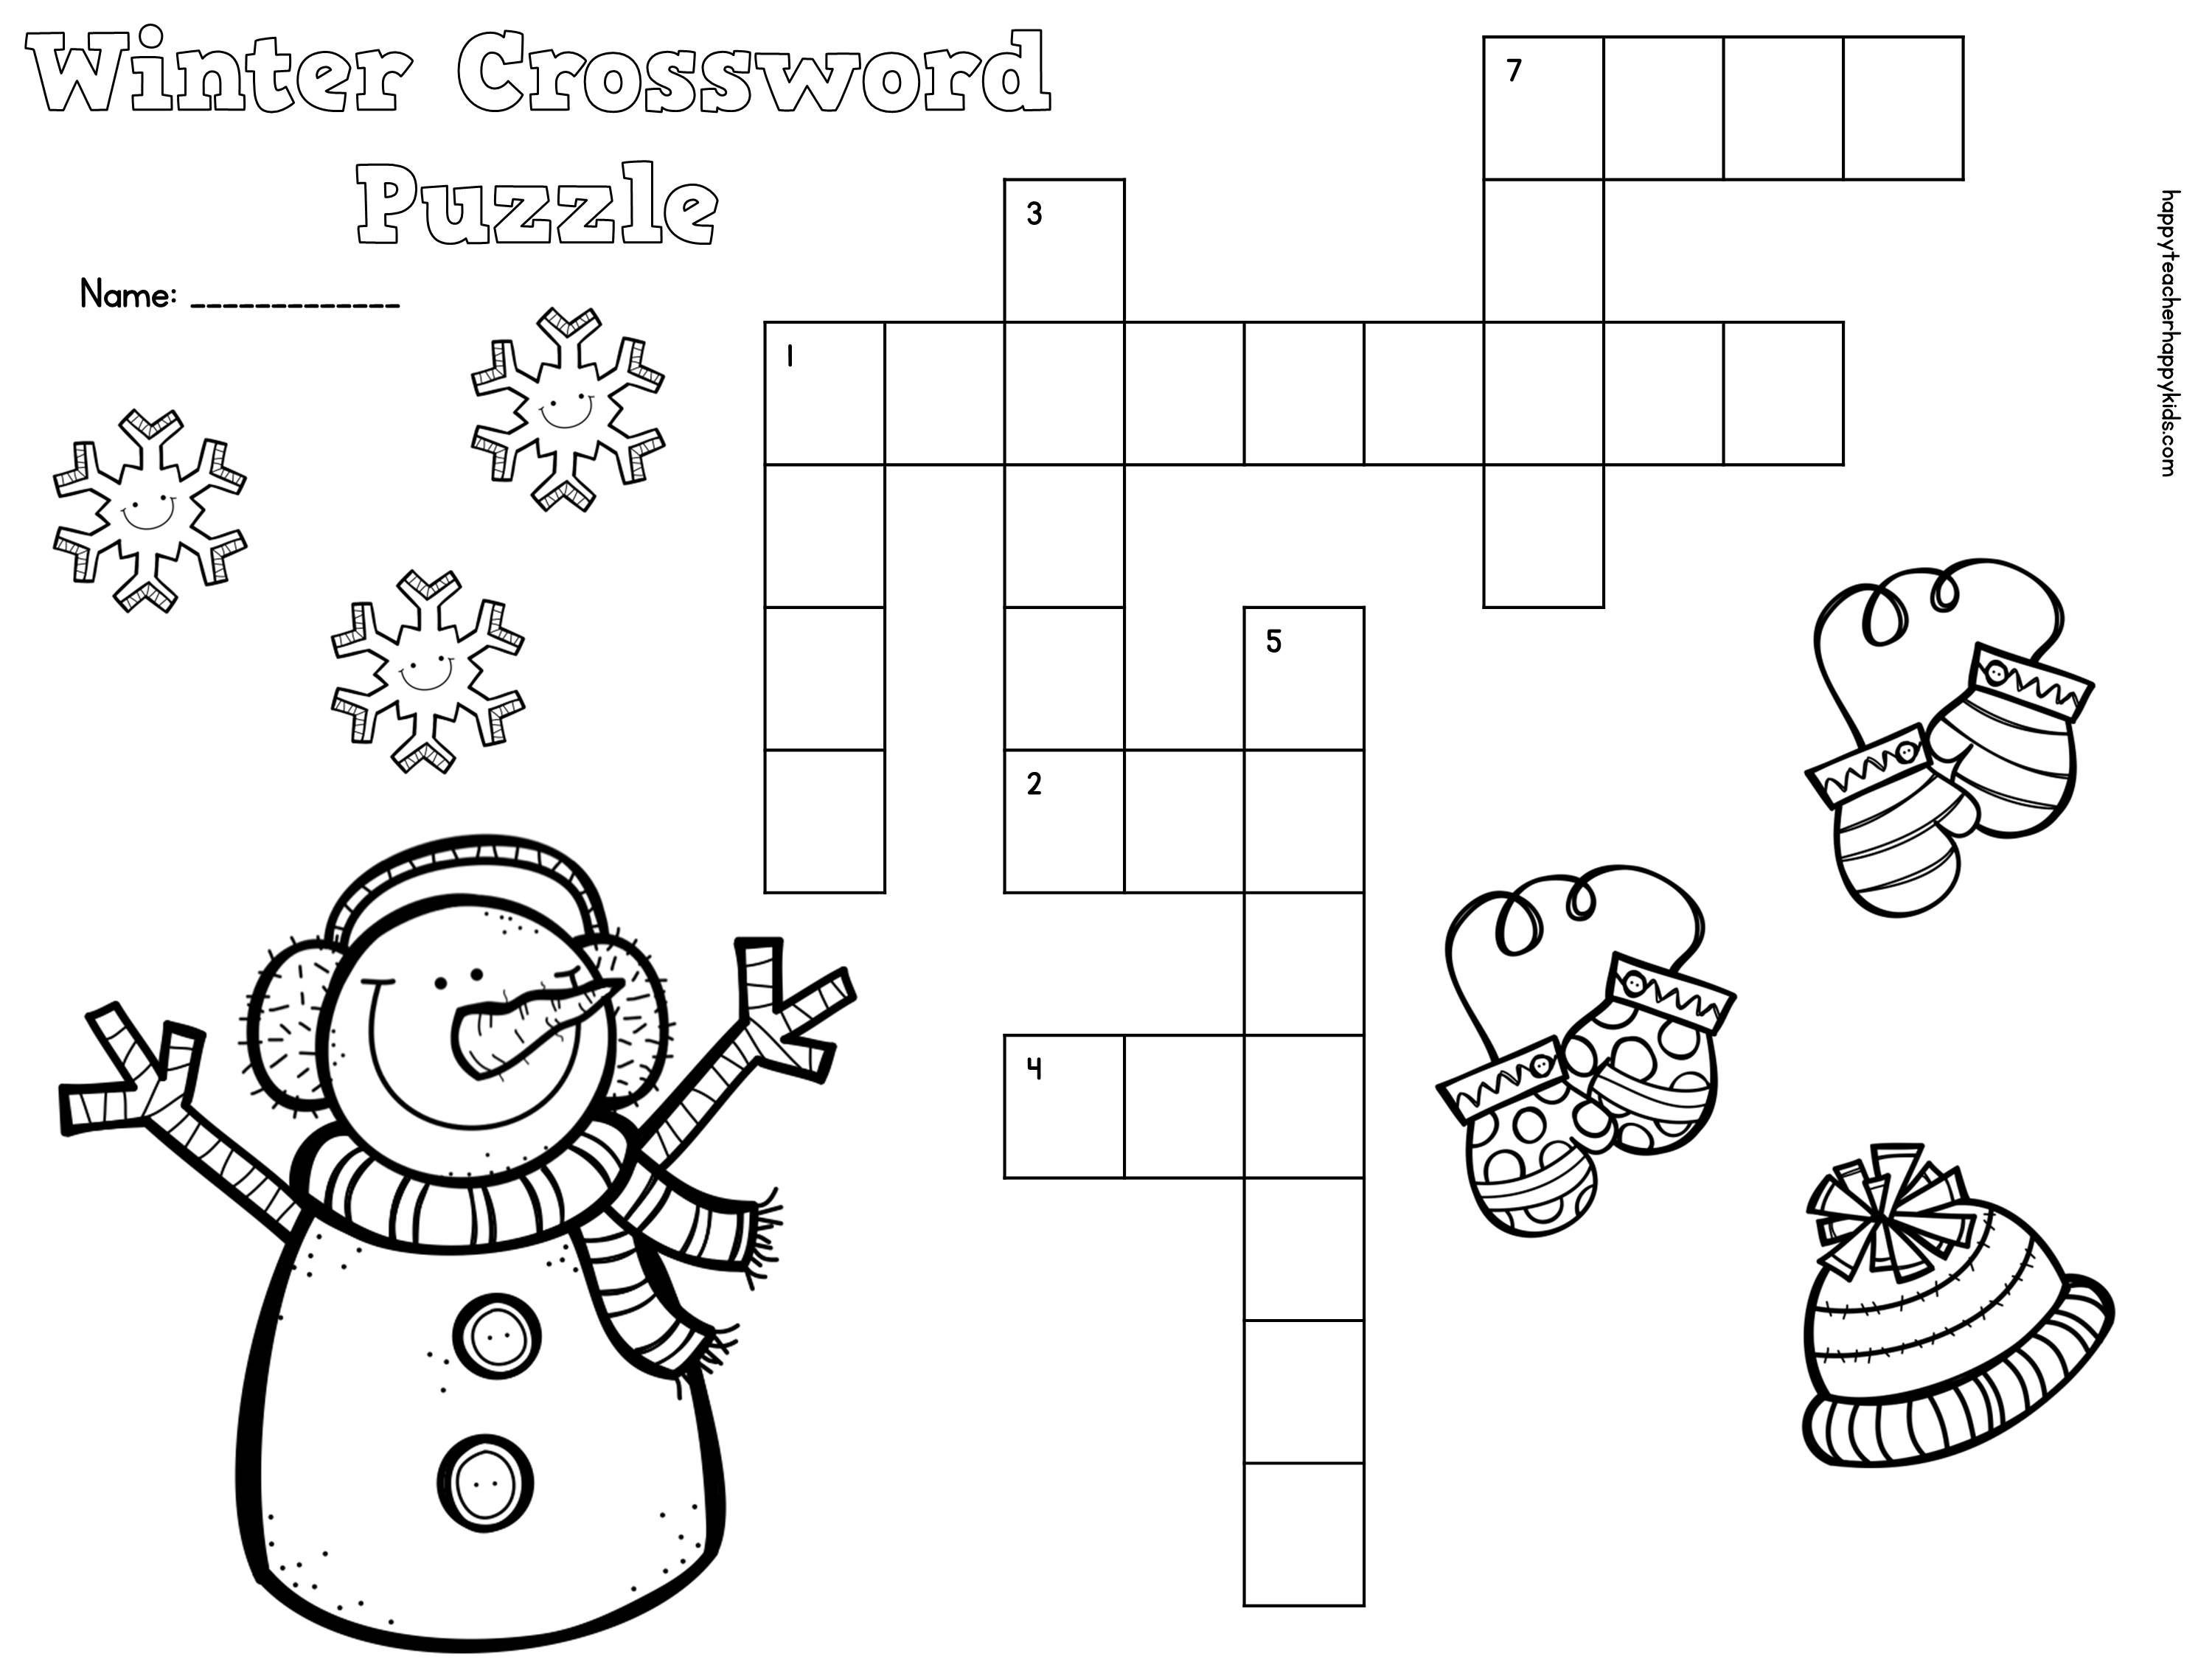 Free Winter Crossword Puzzle For Primary Students | Snow, Penguins - Winter Crossword Puzzle Printable